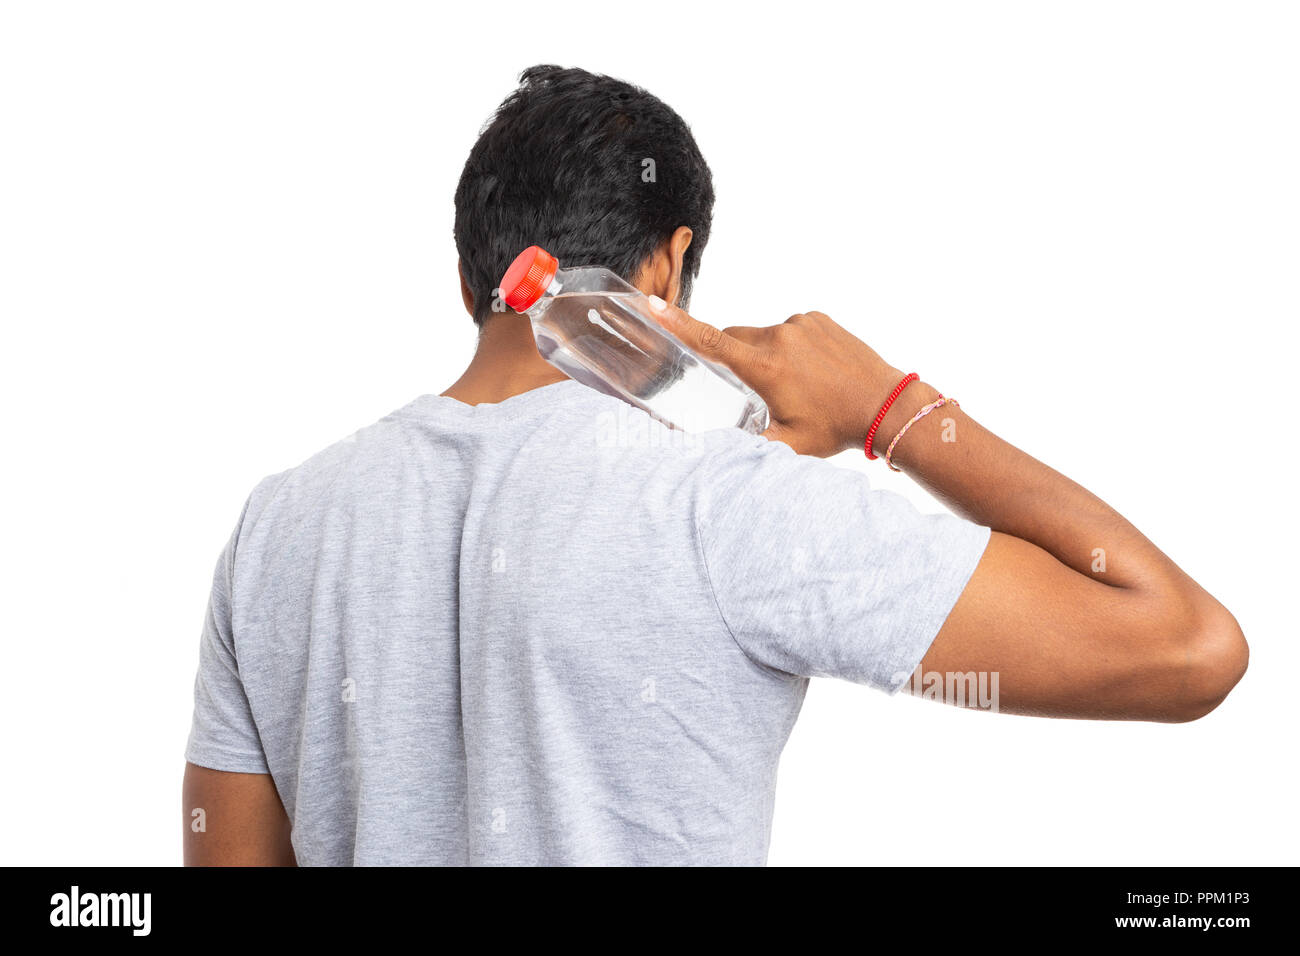 Indian person touching back of neck with plastic water bottle not looking at camera isolated on white as stay hydrated concept - Stock Image